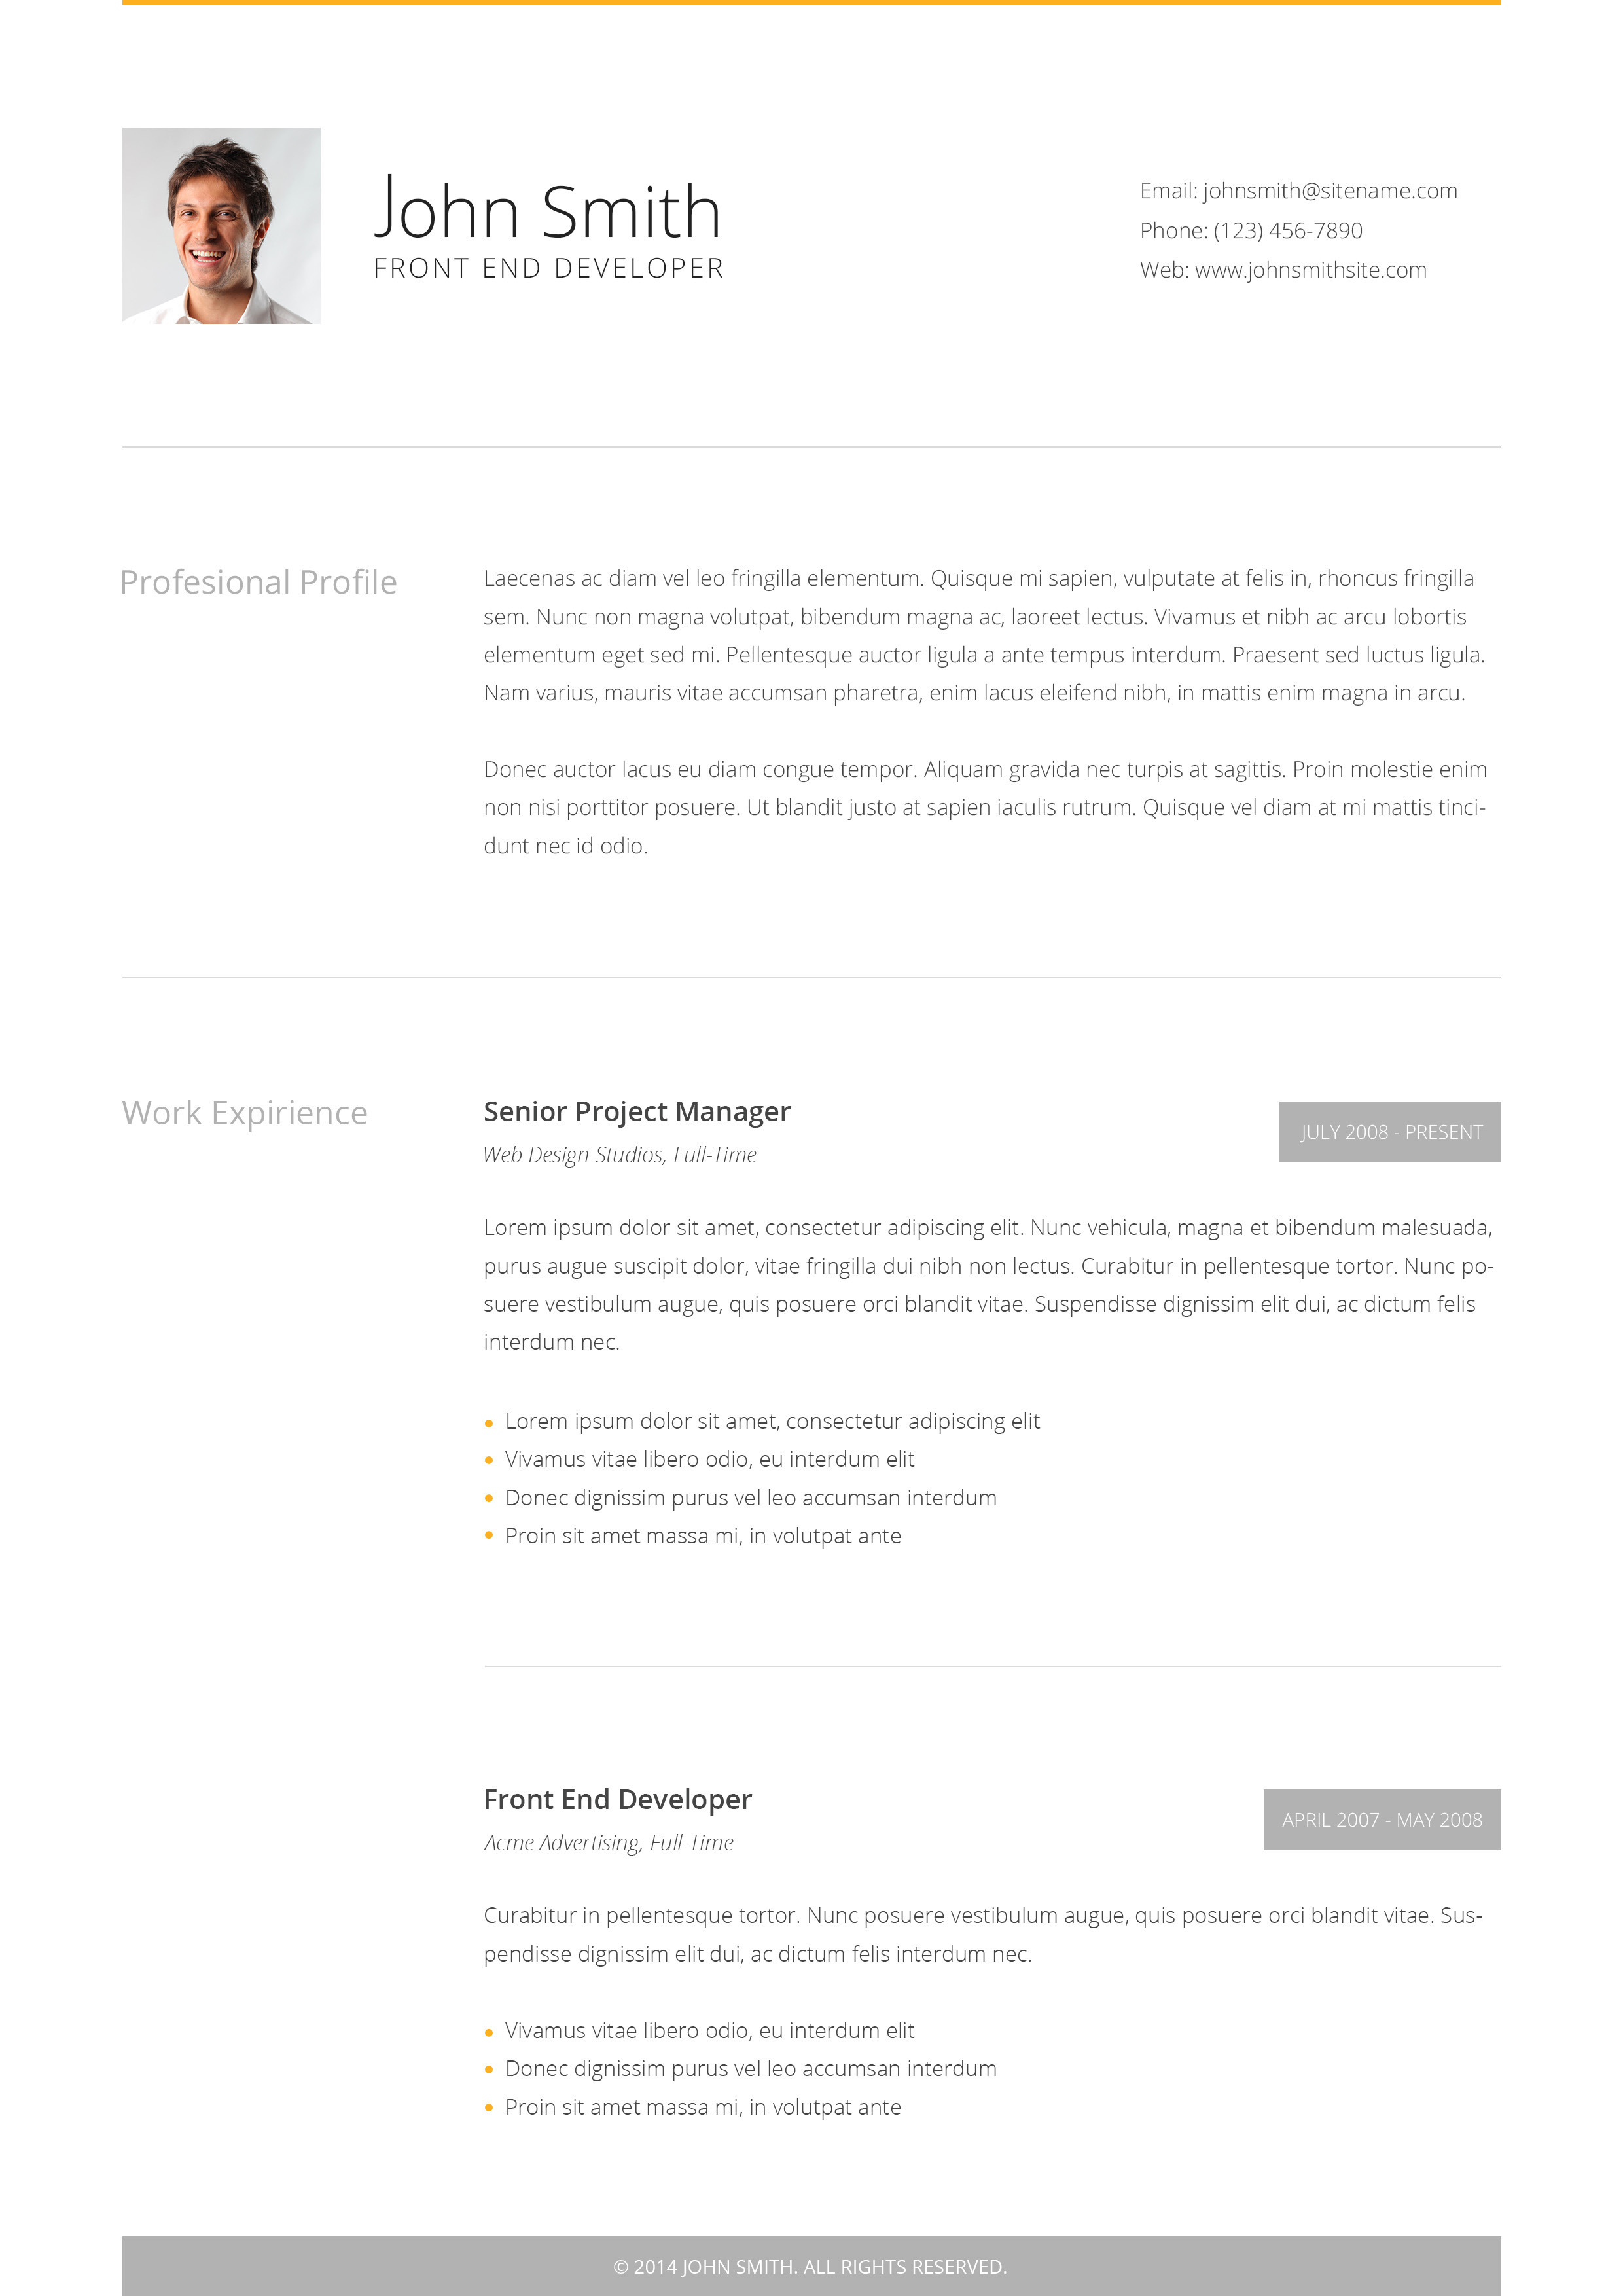 Clean Cv  Responsive Resume Template   Bonuses By Bitpub